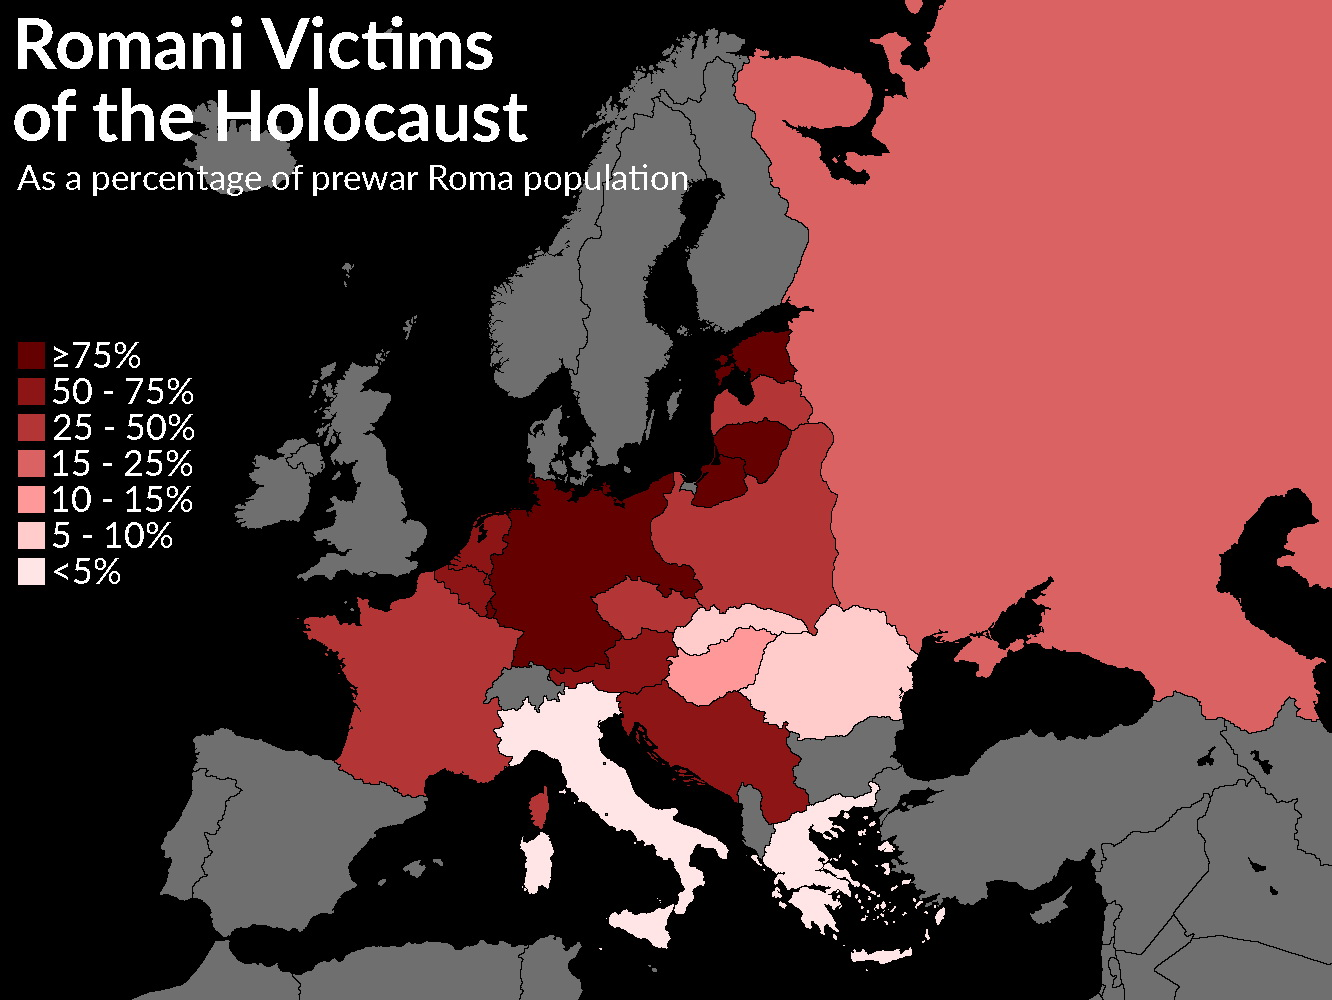 Romani victims of the Holocaust as a percentage of the pre-war population